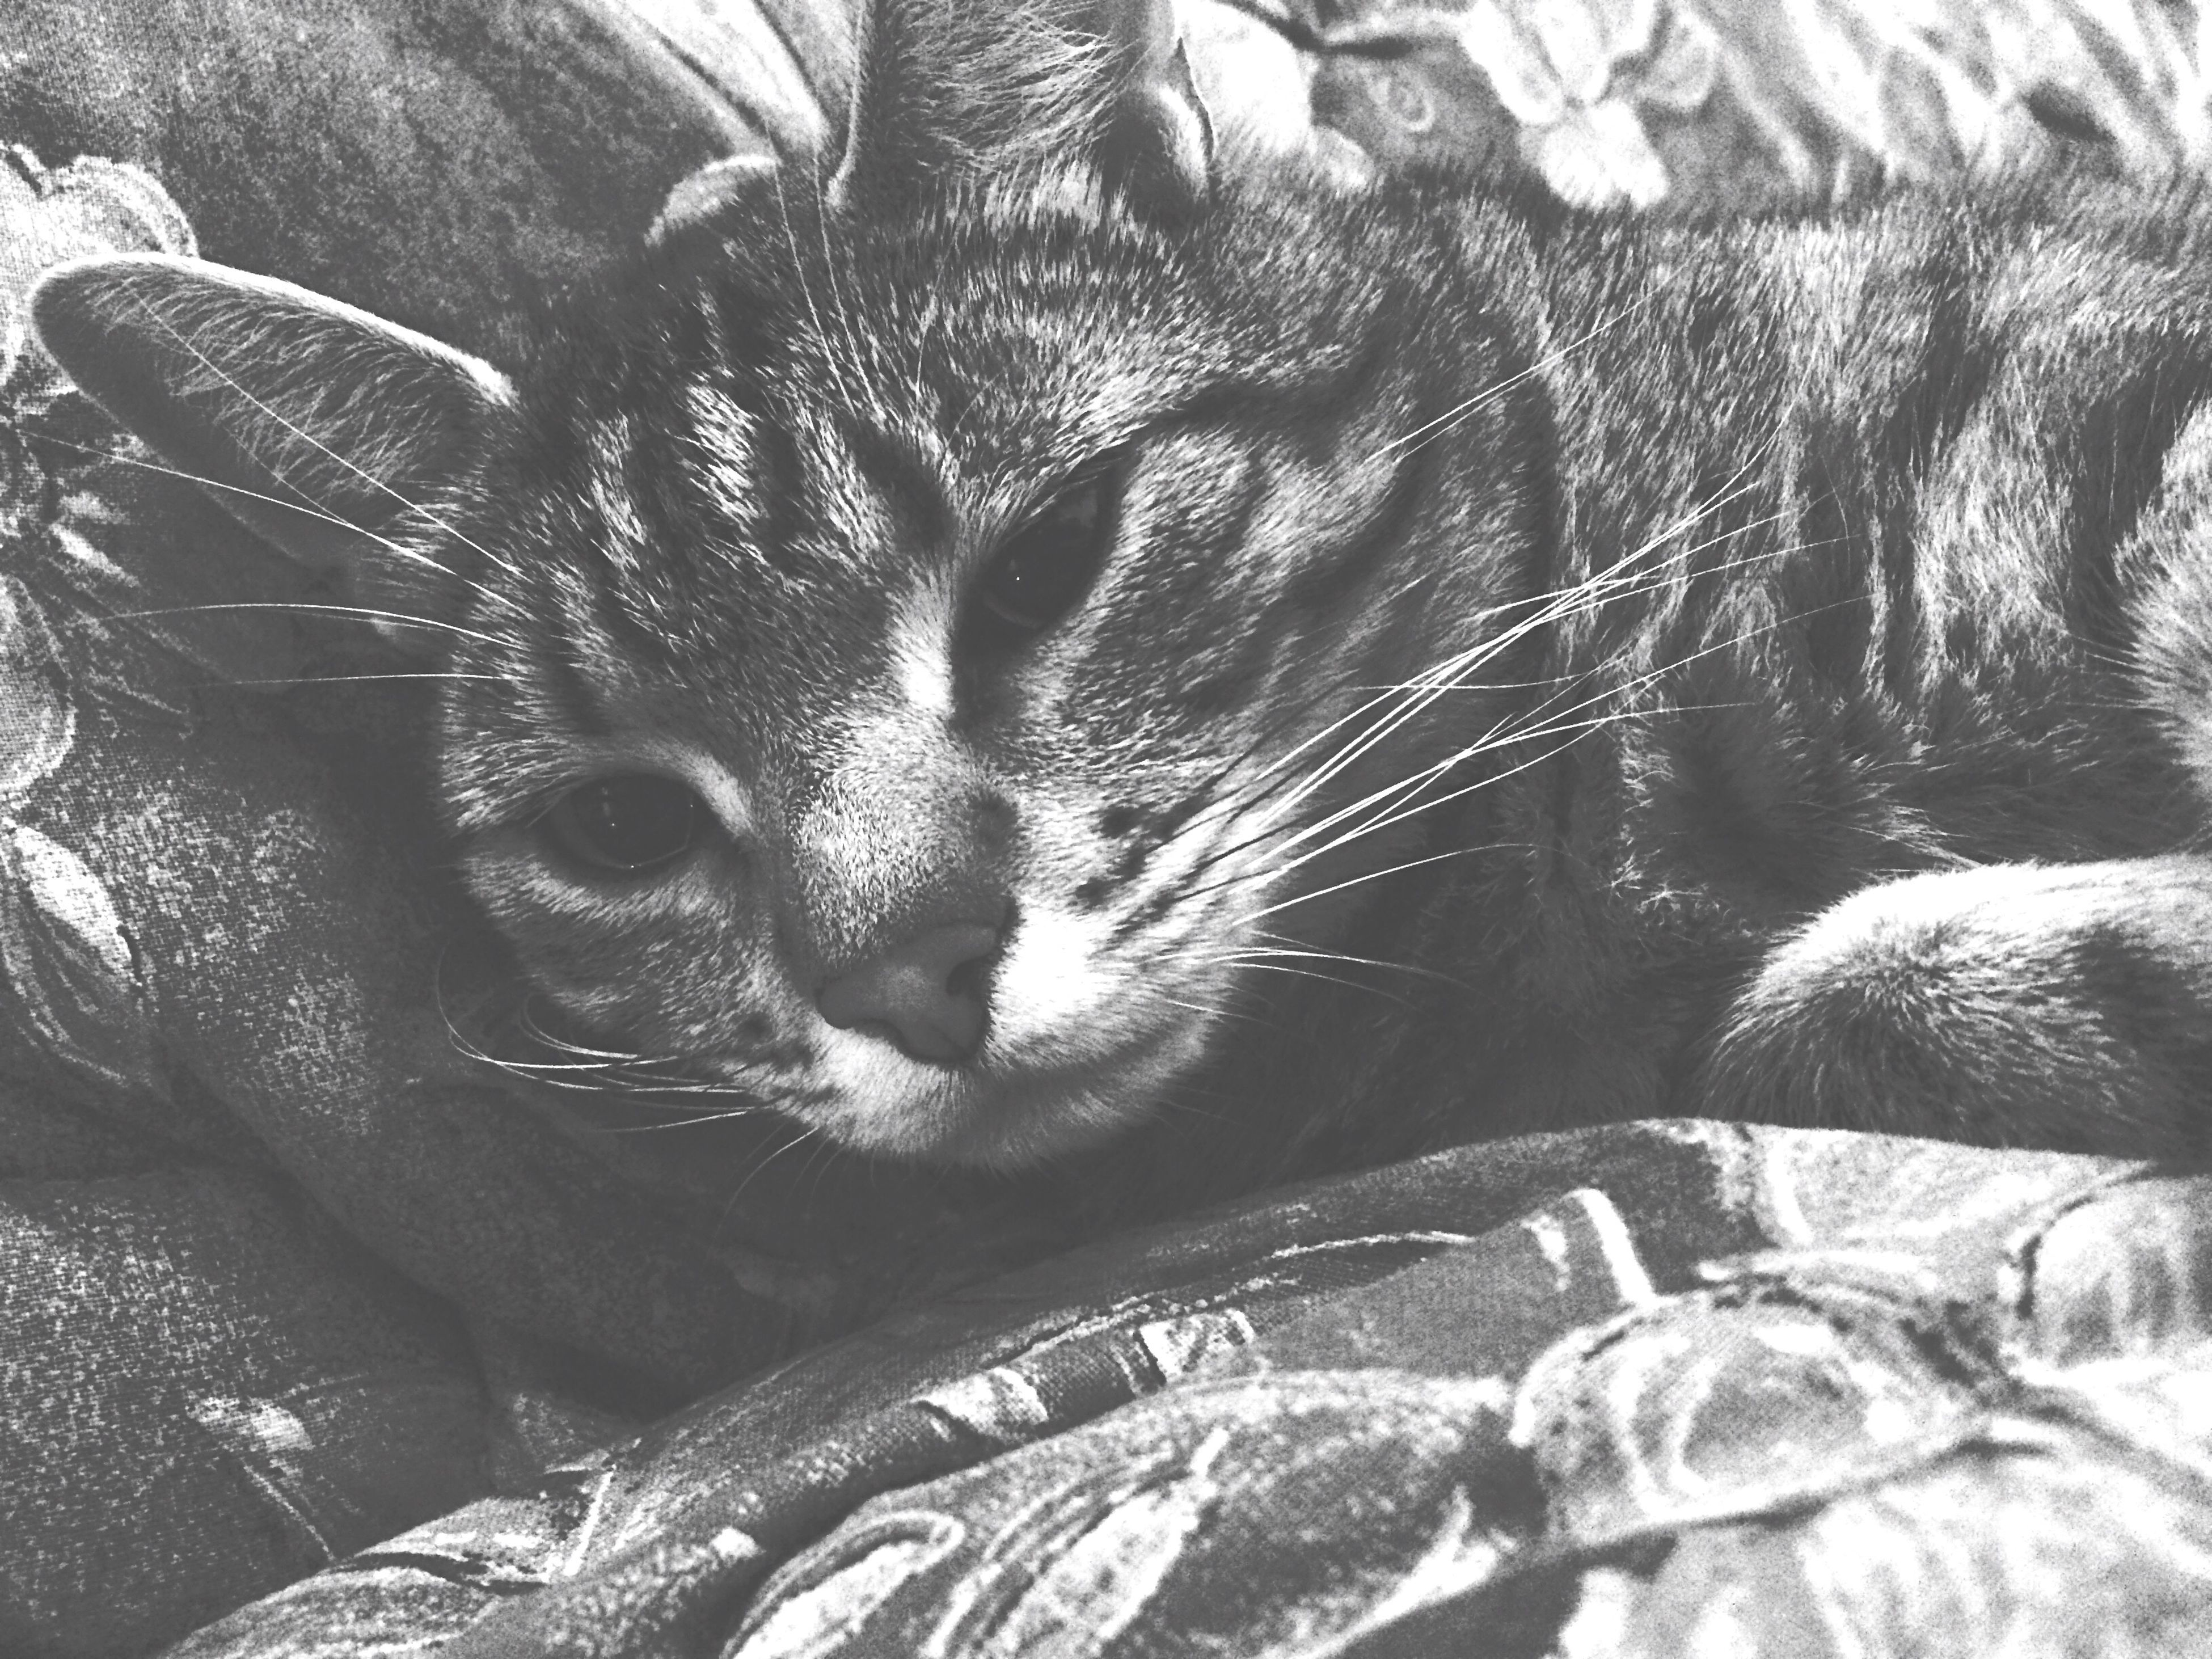 animal themes, one animal, high angle view, indoors, domestic cat, close-up, cat, pattern, no people, pets, mammal, domestic animals, whisker, day, feline, full frame, art, part of, art and craft